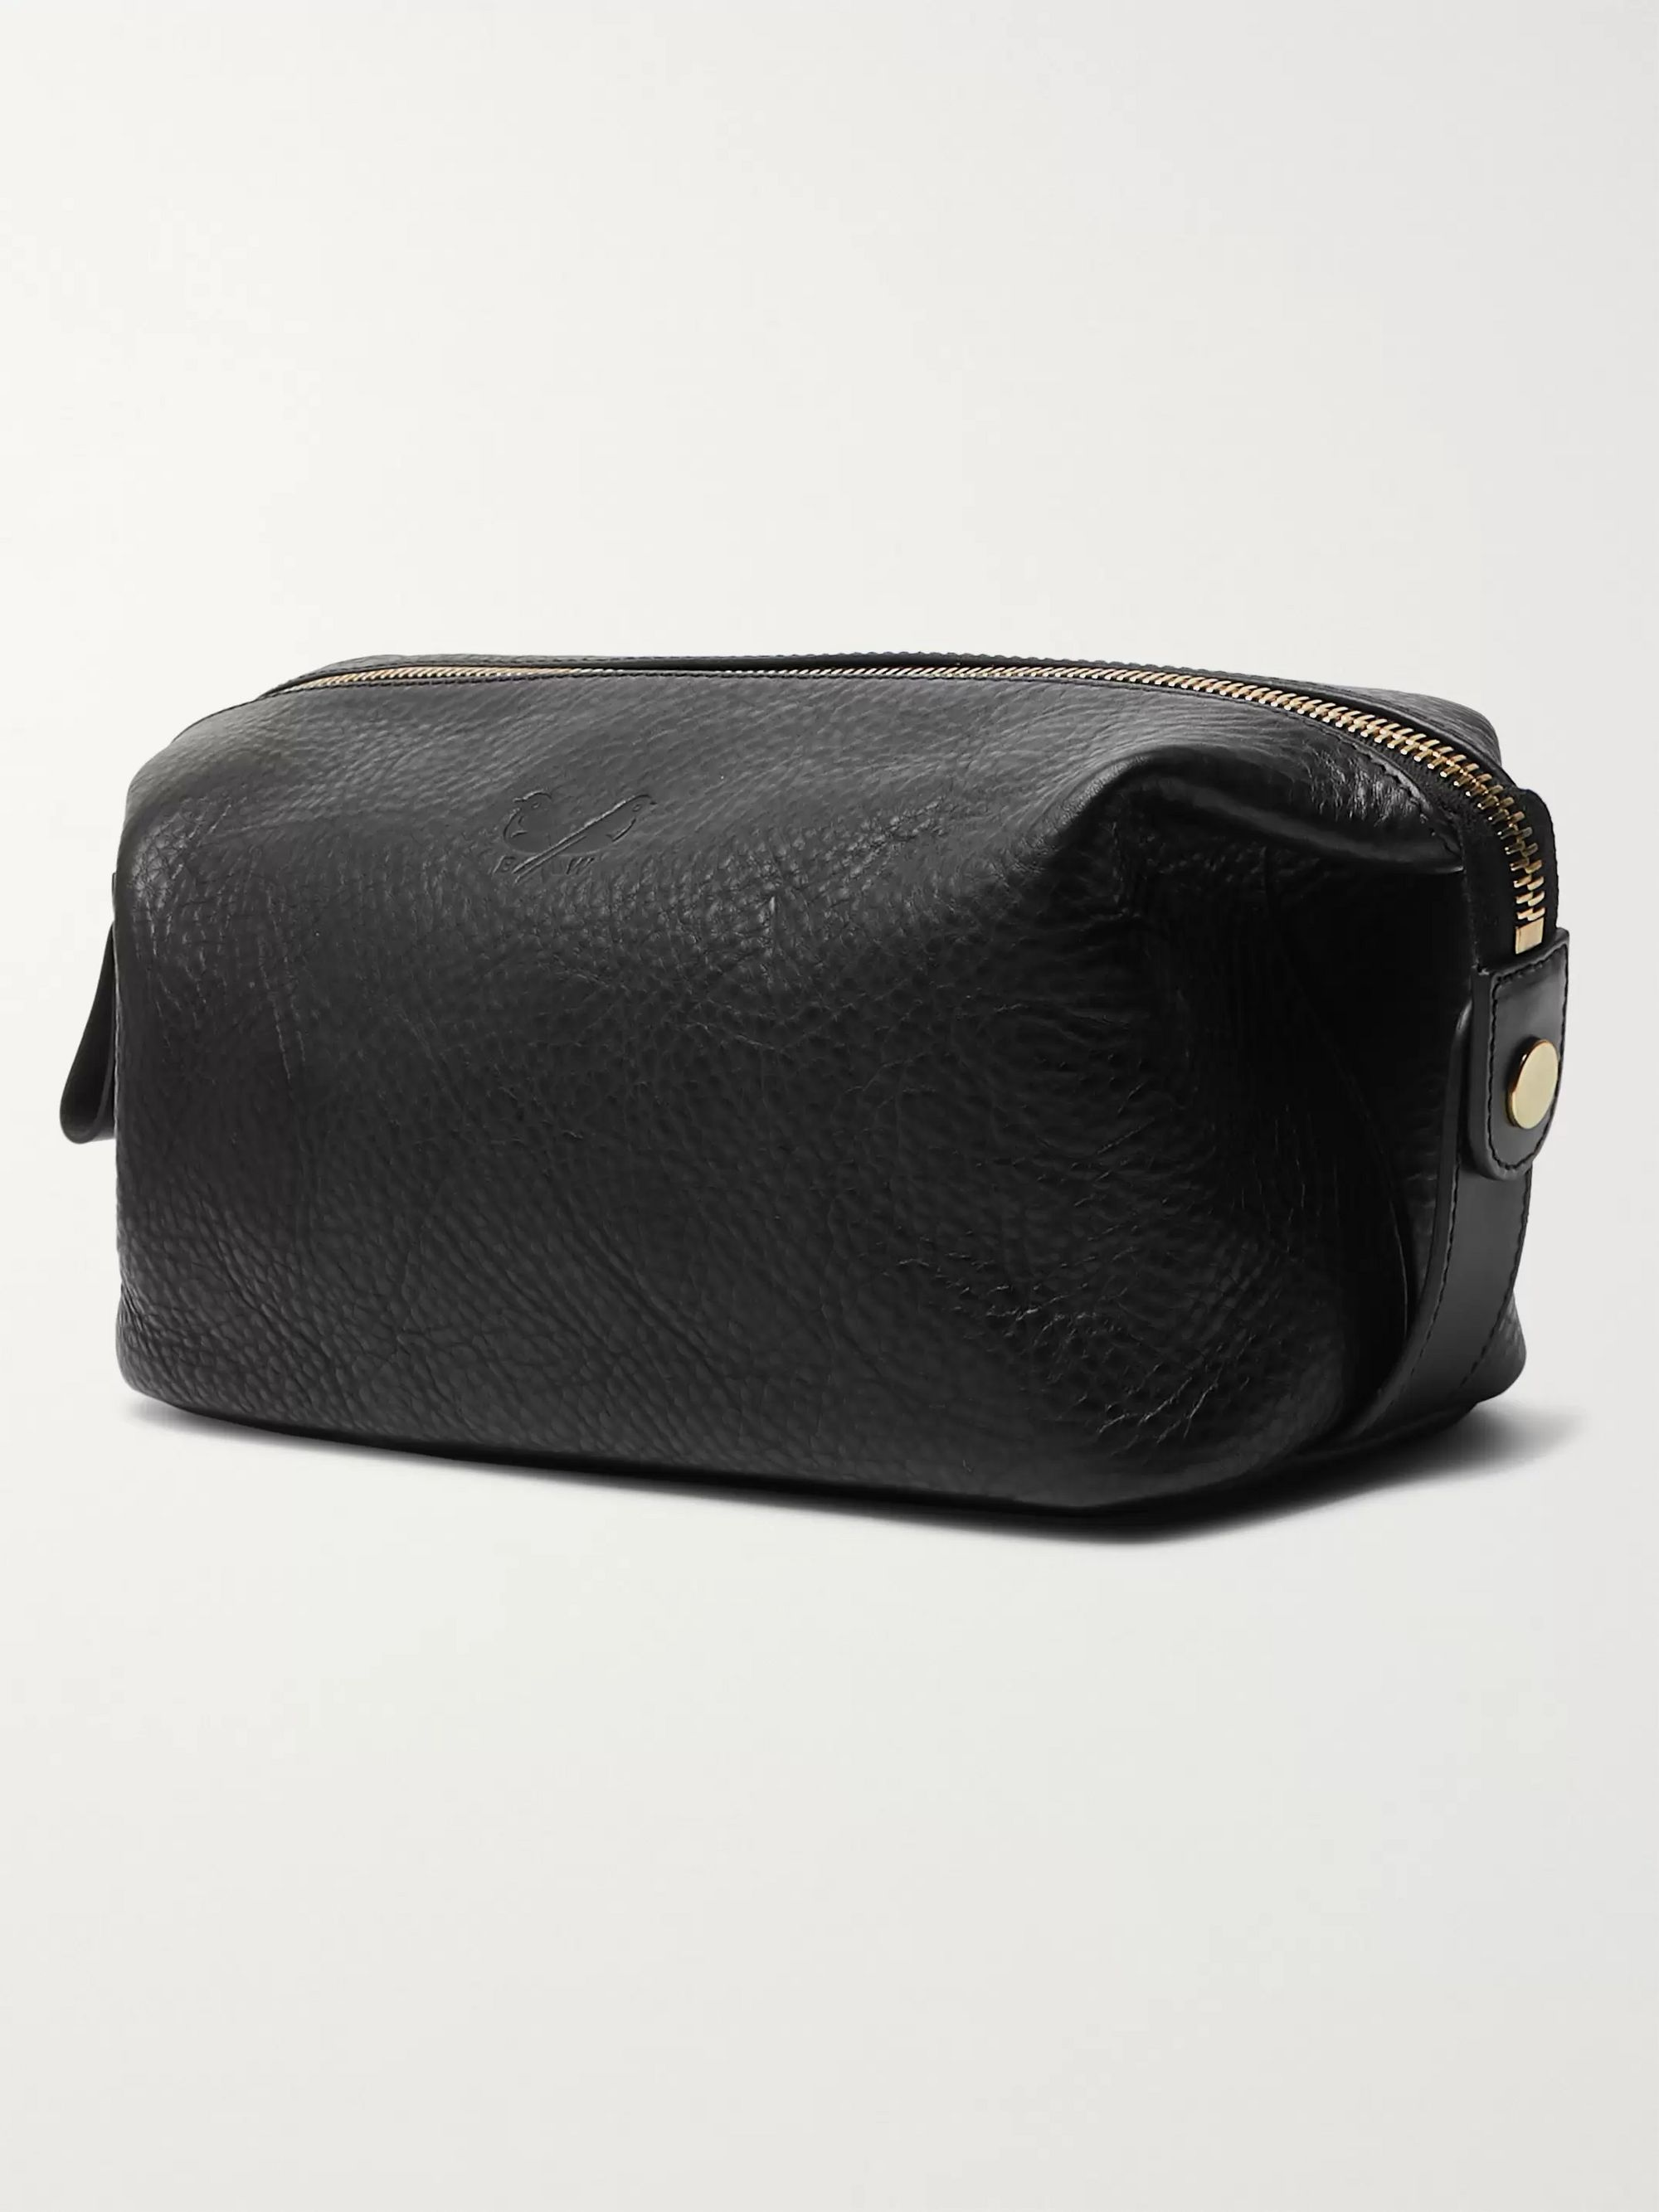 Bennett Winch Full-Grain Leather Wash Bag